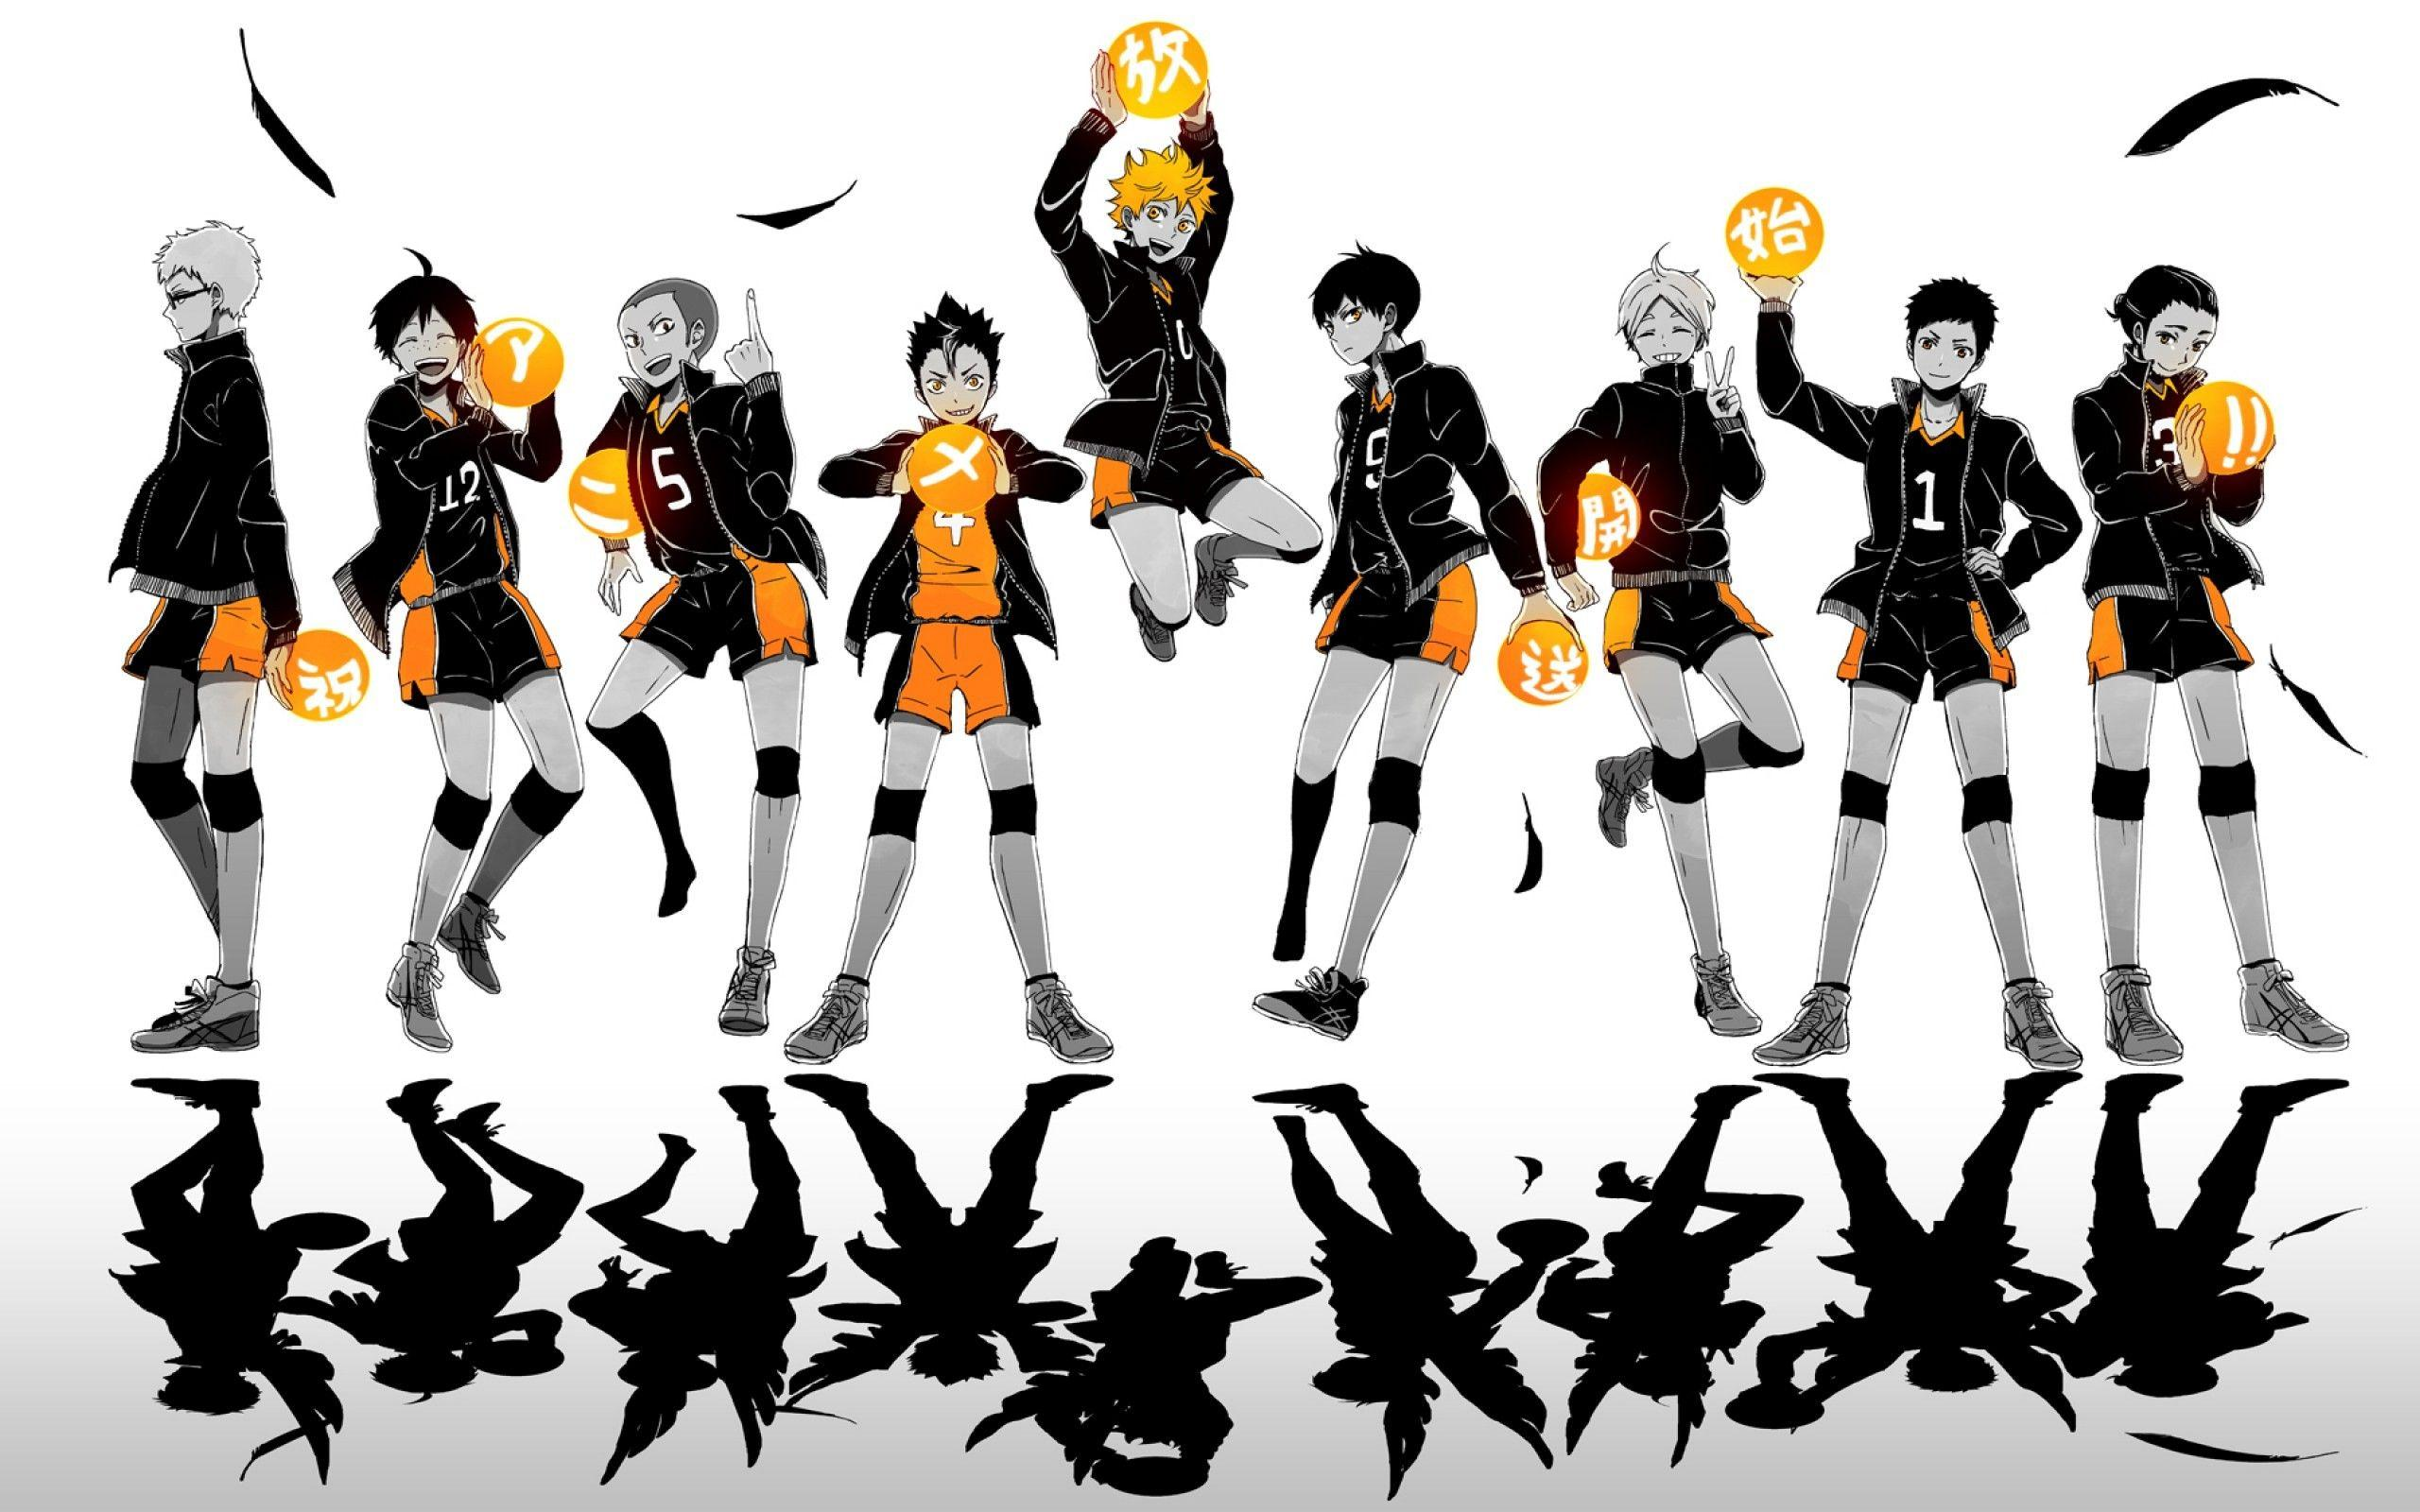 Haikyuu wallpapers ·① Download free cool High Resolution wallpapers